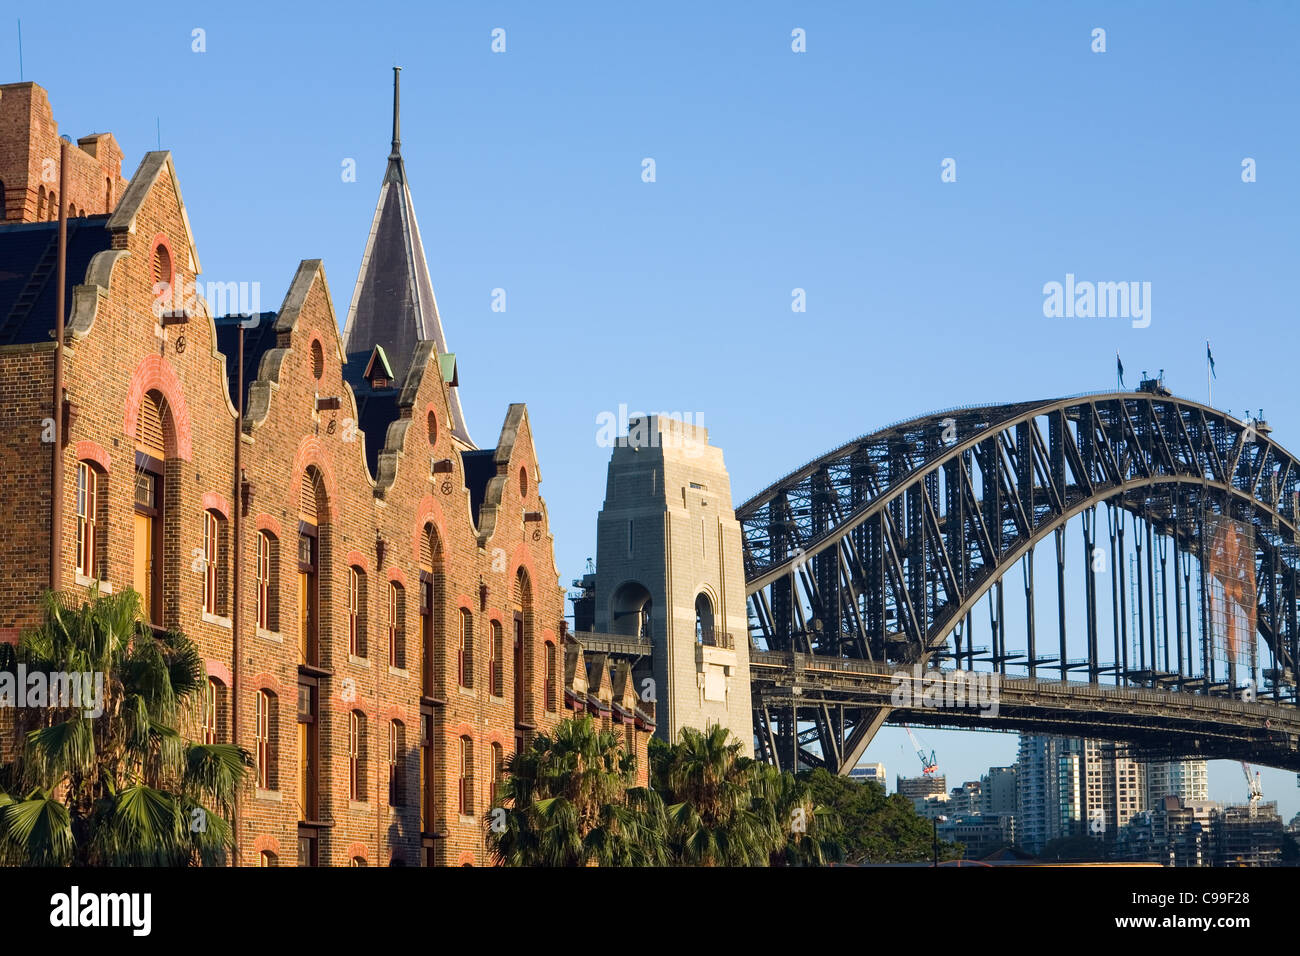 La arquitectura del edificio Australasian Steam Navigation Co. y el Harbour Bridge. Sydney, New South Wales, Australia Imagen De Stock